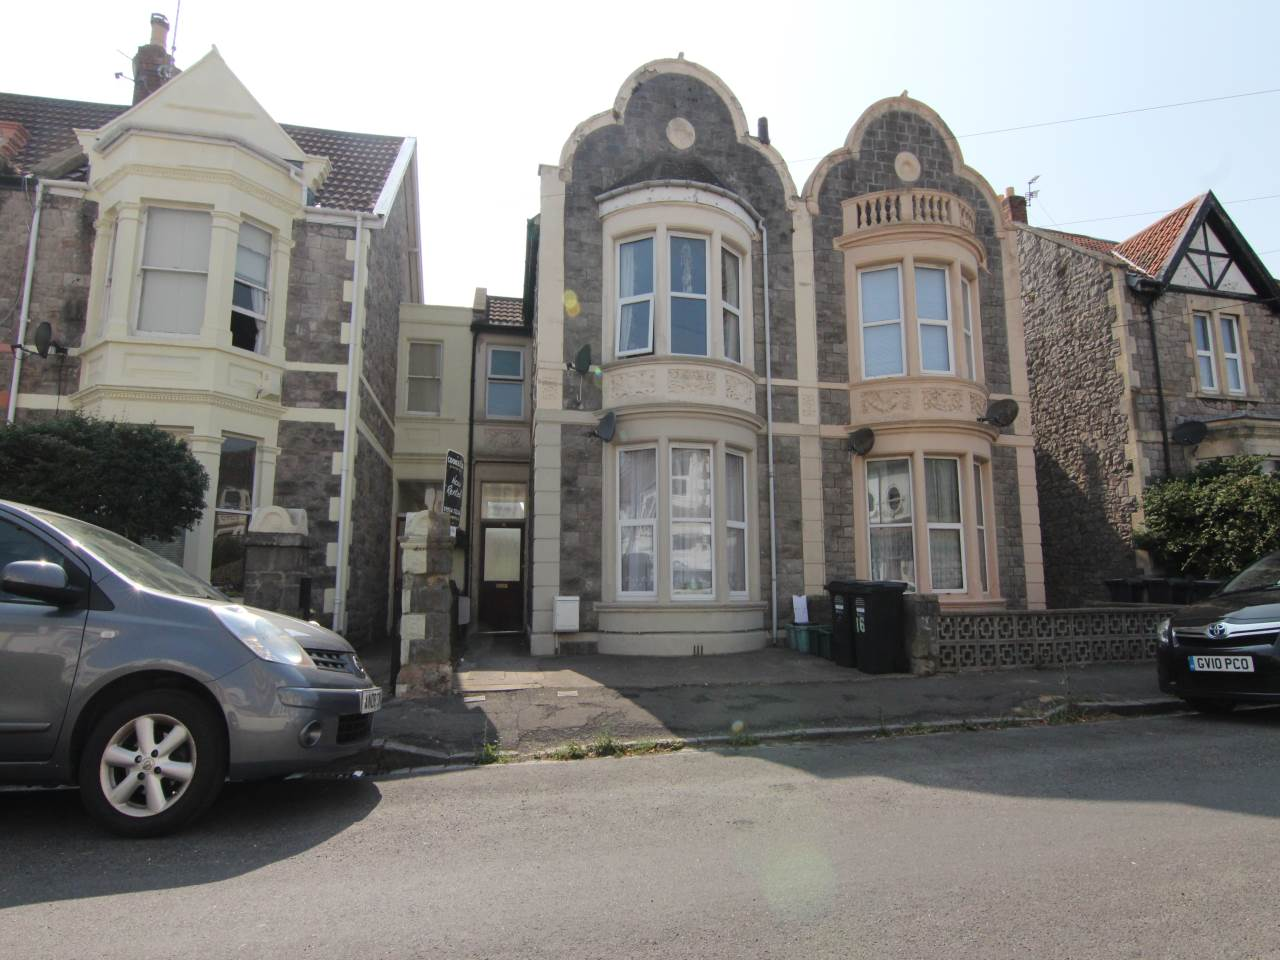 2 bed Flat for rent in Weston-Super-Mare. From Cooke & Co - Weston-Super-Mare